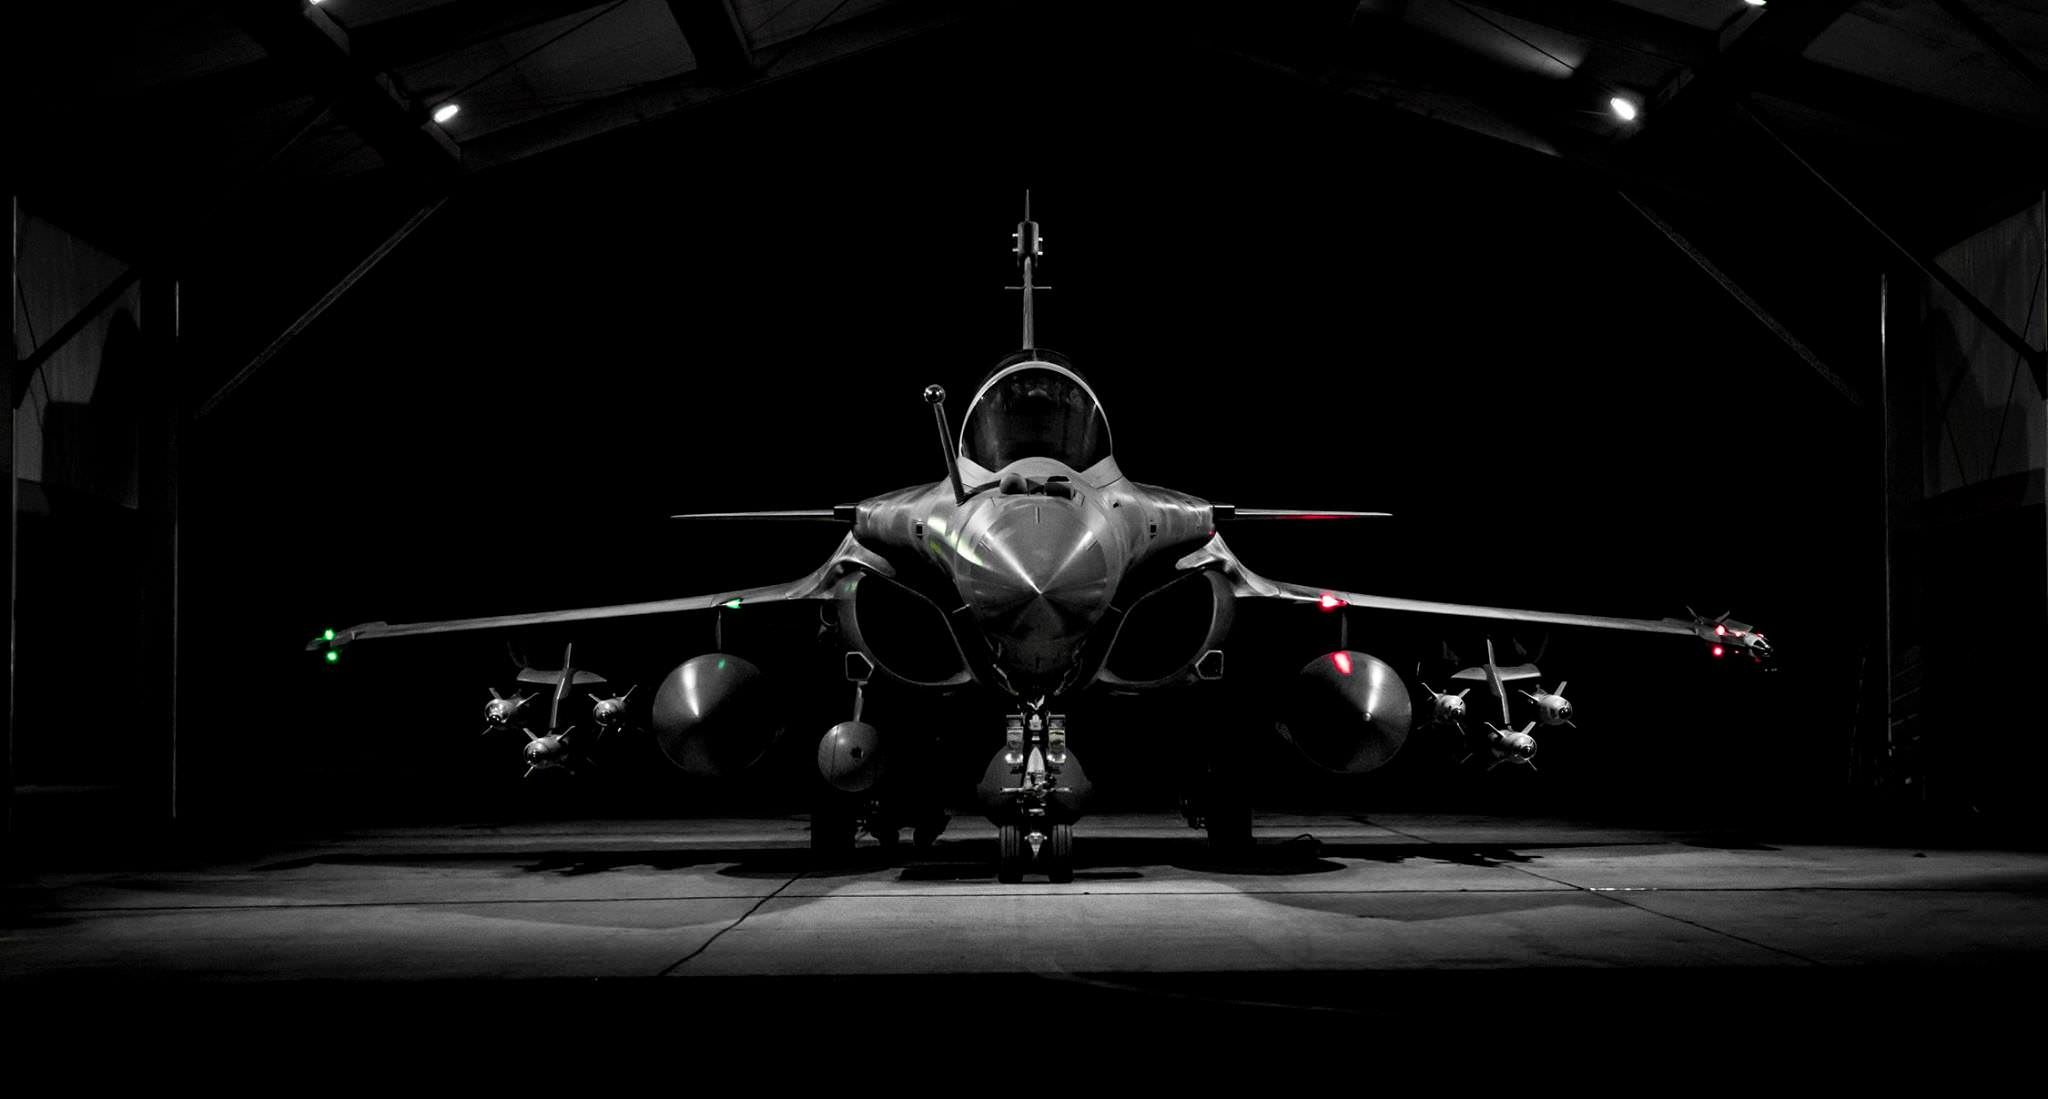 Just The Incredibly Beautiful Dassault Rafale 2048 X 1099